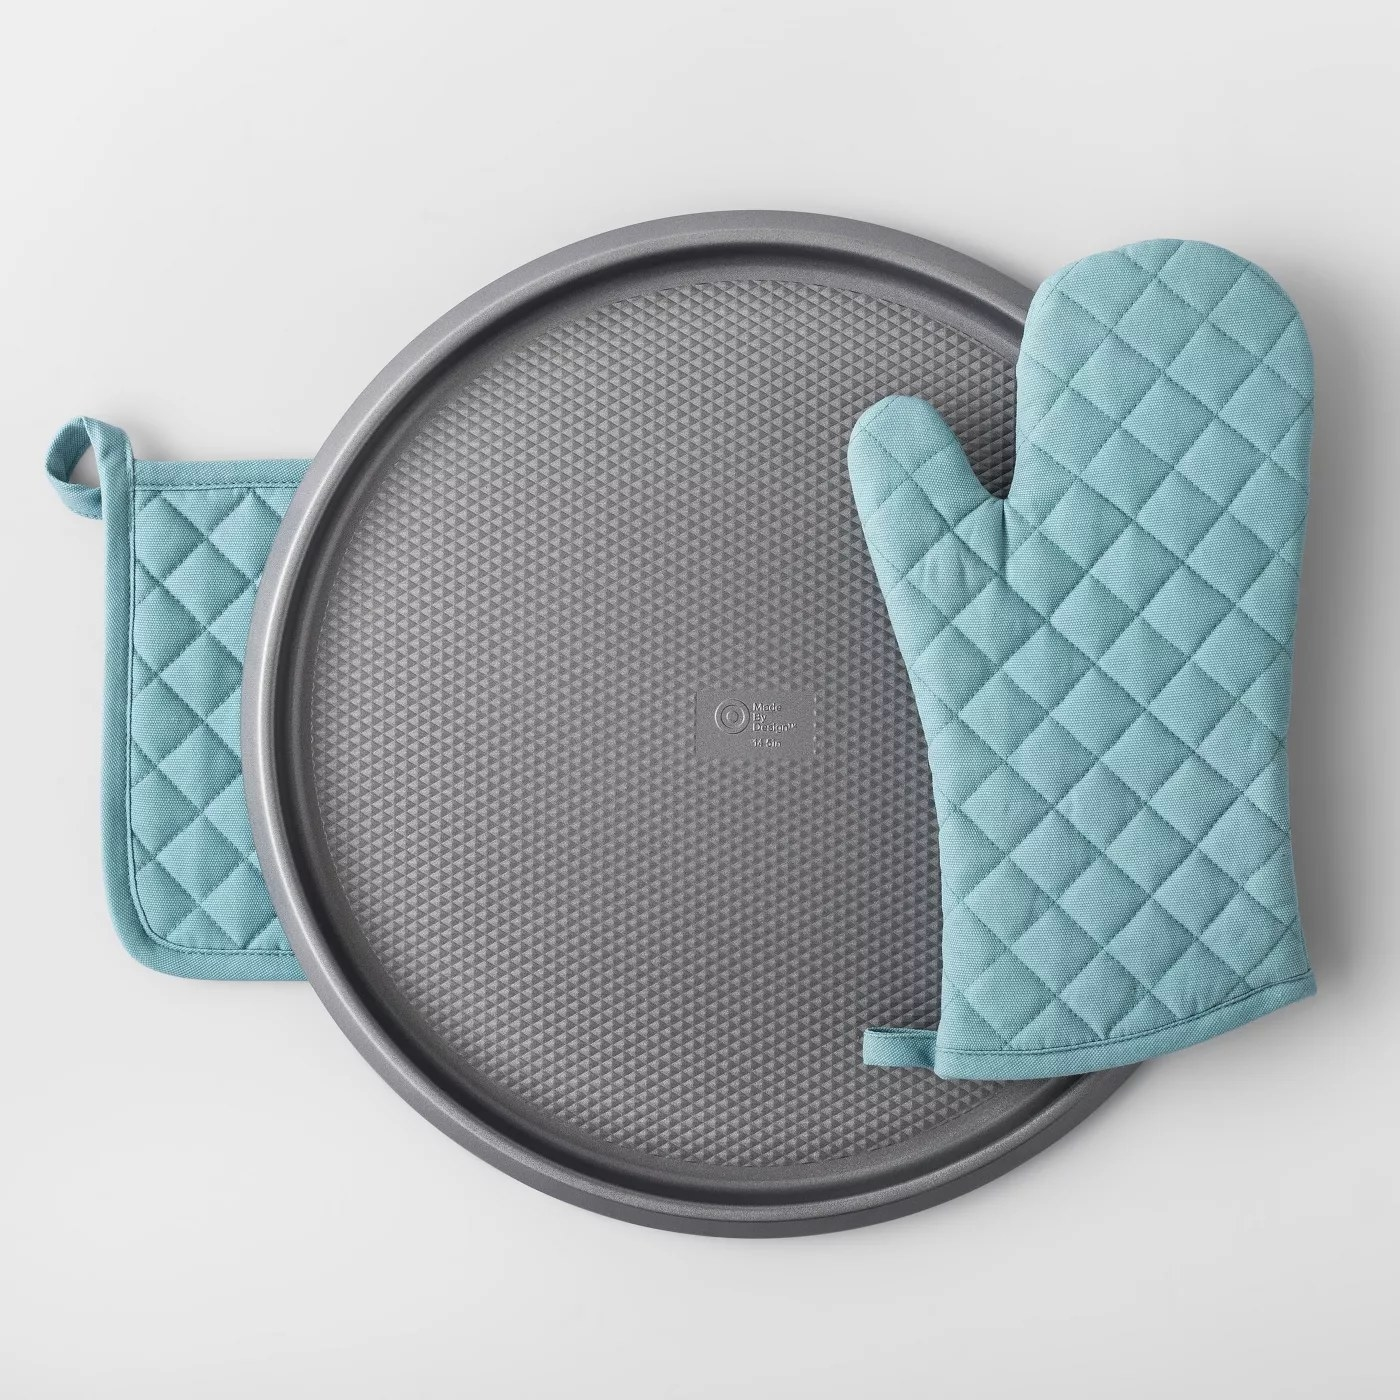 The blue potholder and oven mitt shown with a pizza pan